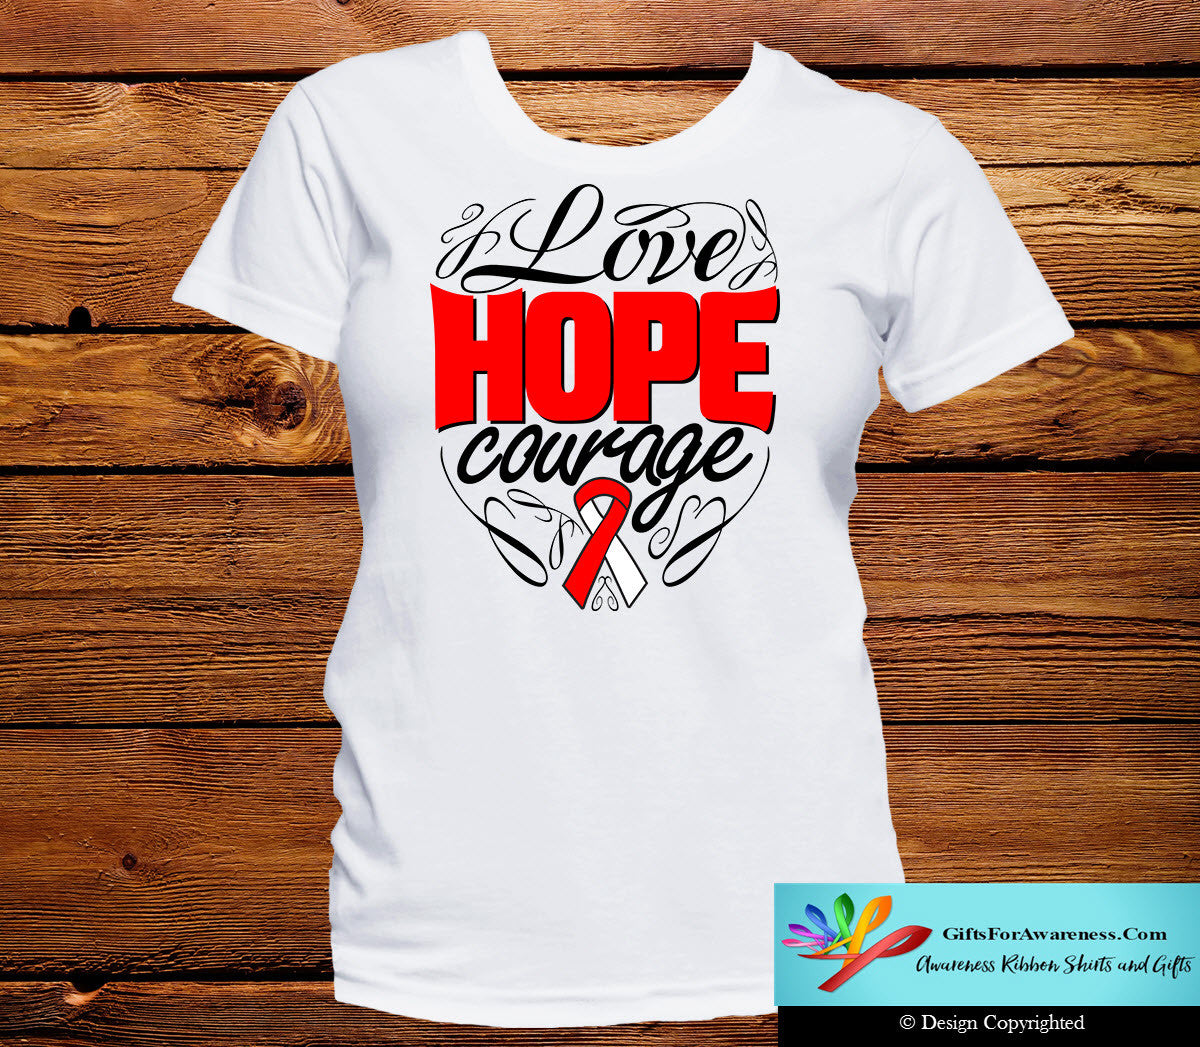 Squamous Cell Carcinoma Love Hope Courage Shirts - GiftsForAwareness